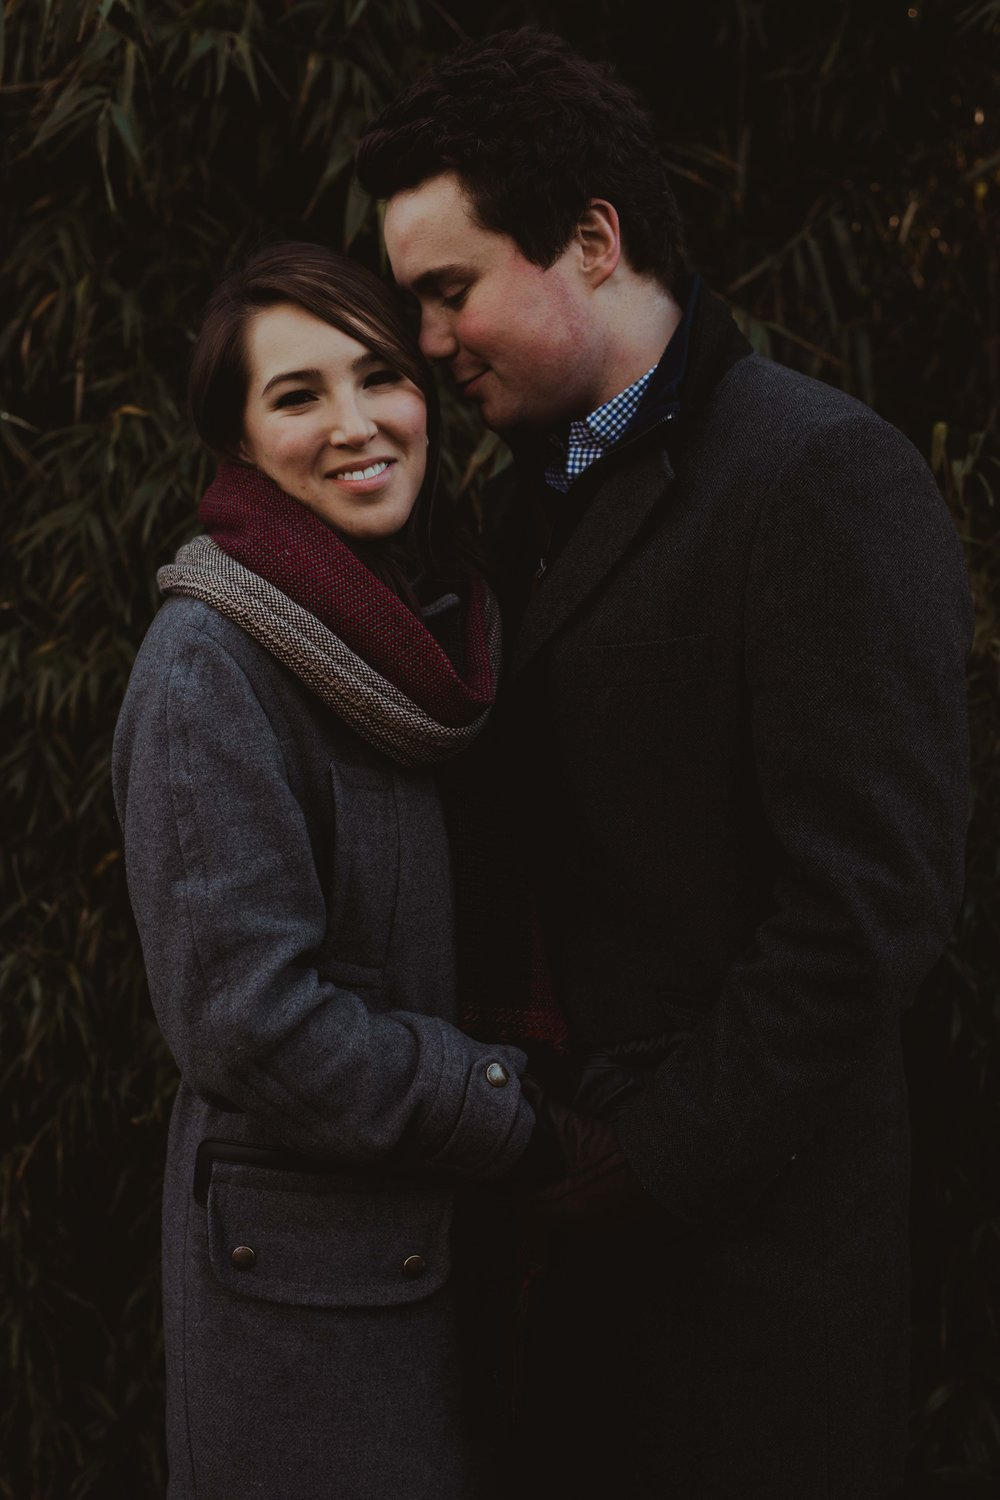 12292016-carolinawill-london-regents-park-engagement-session-47